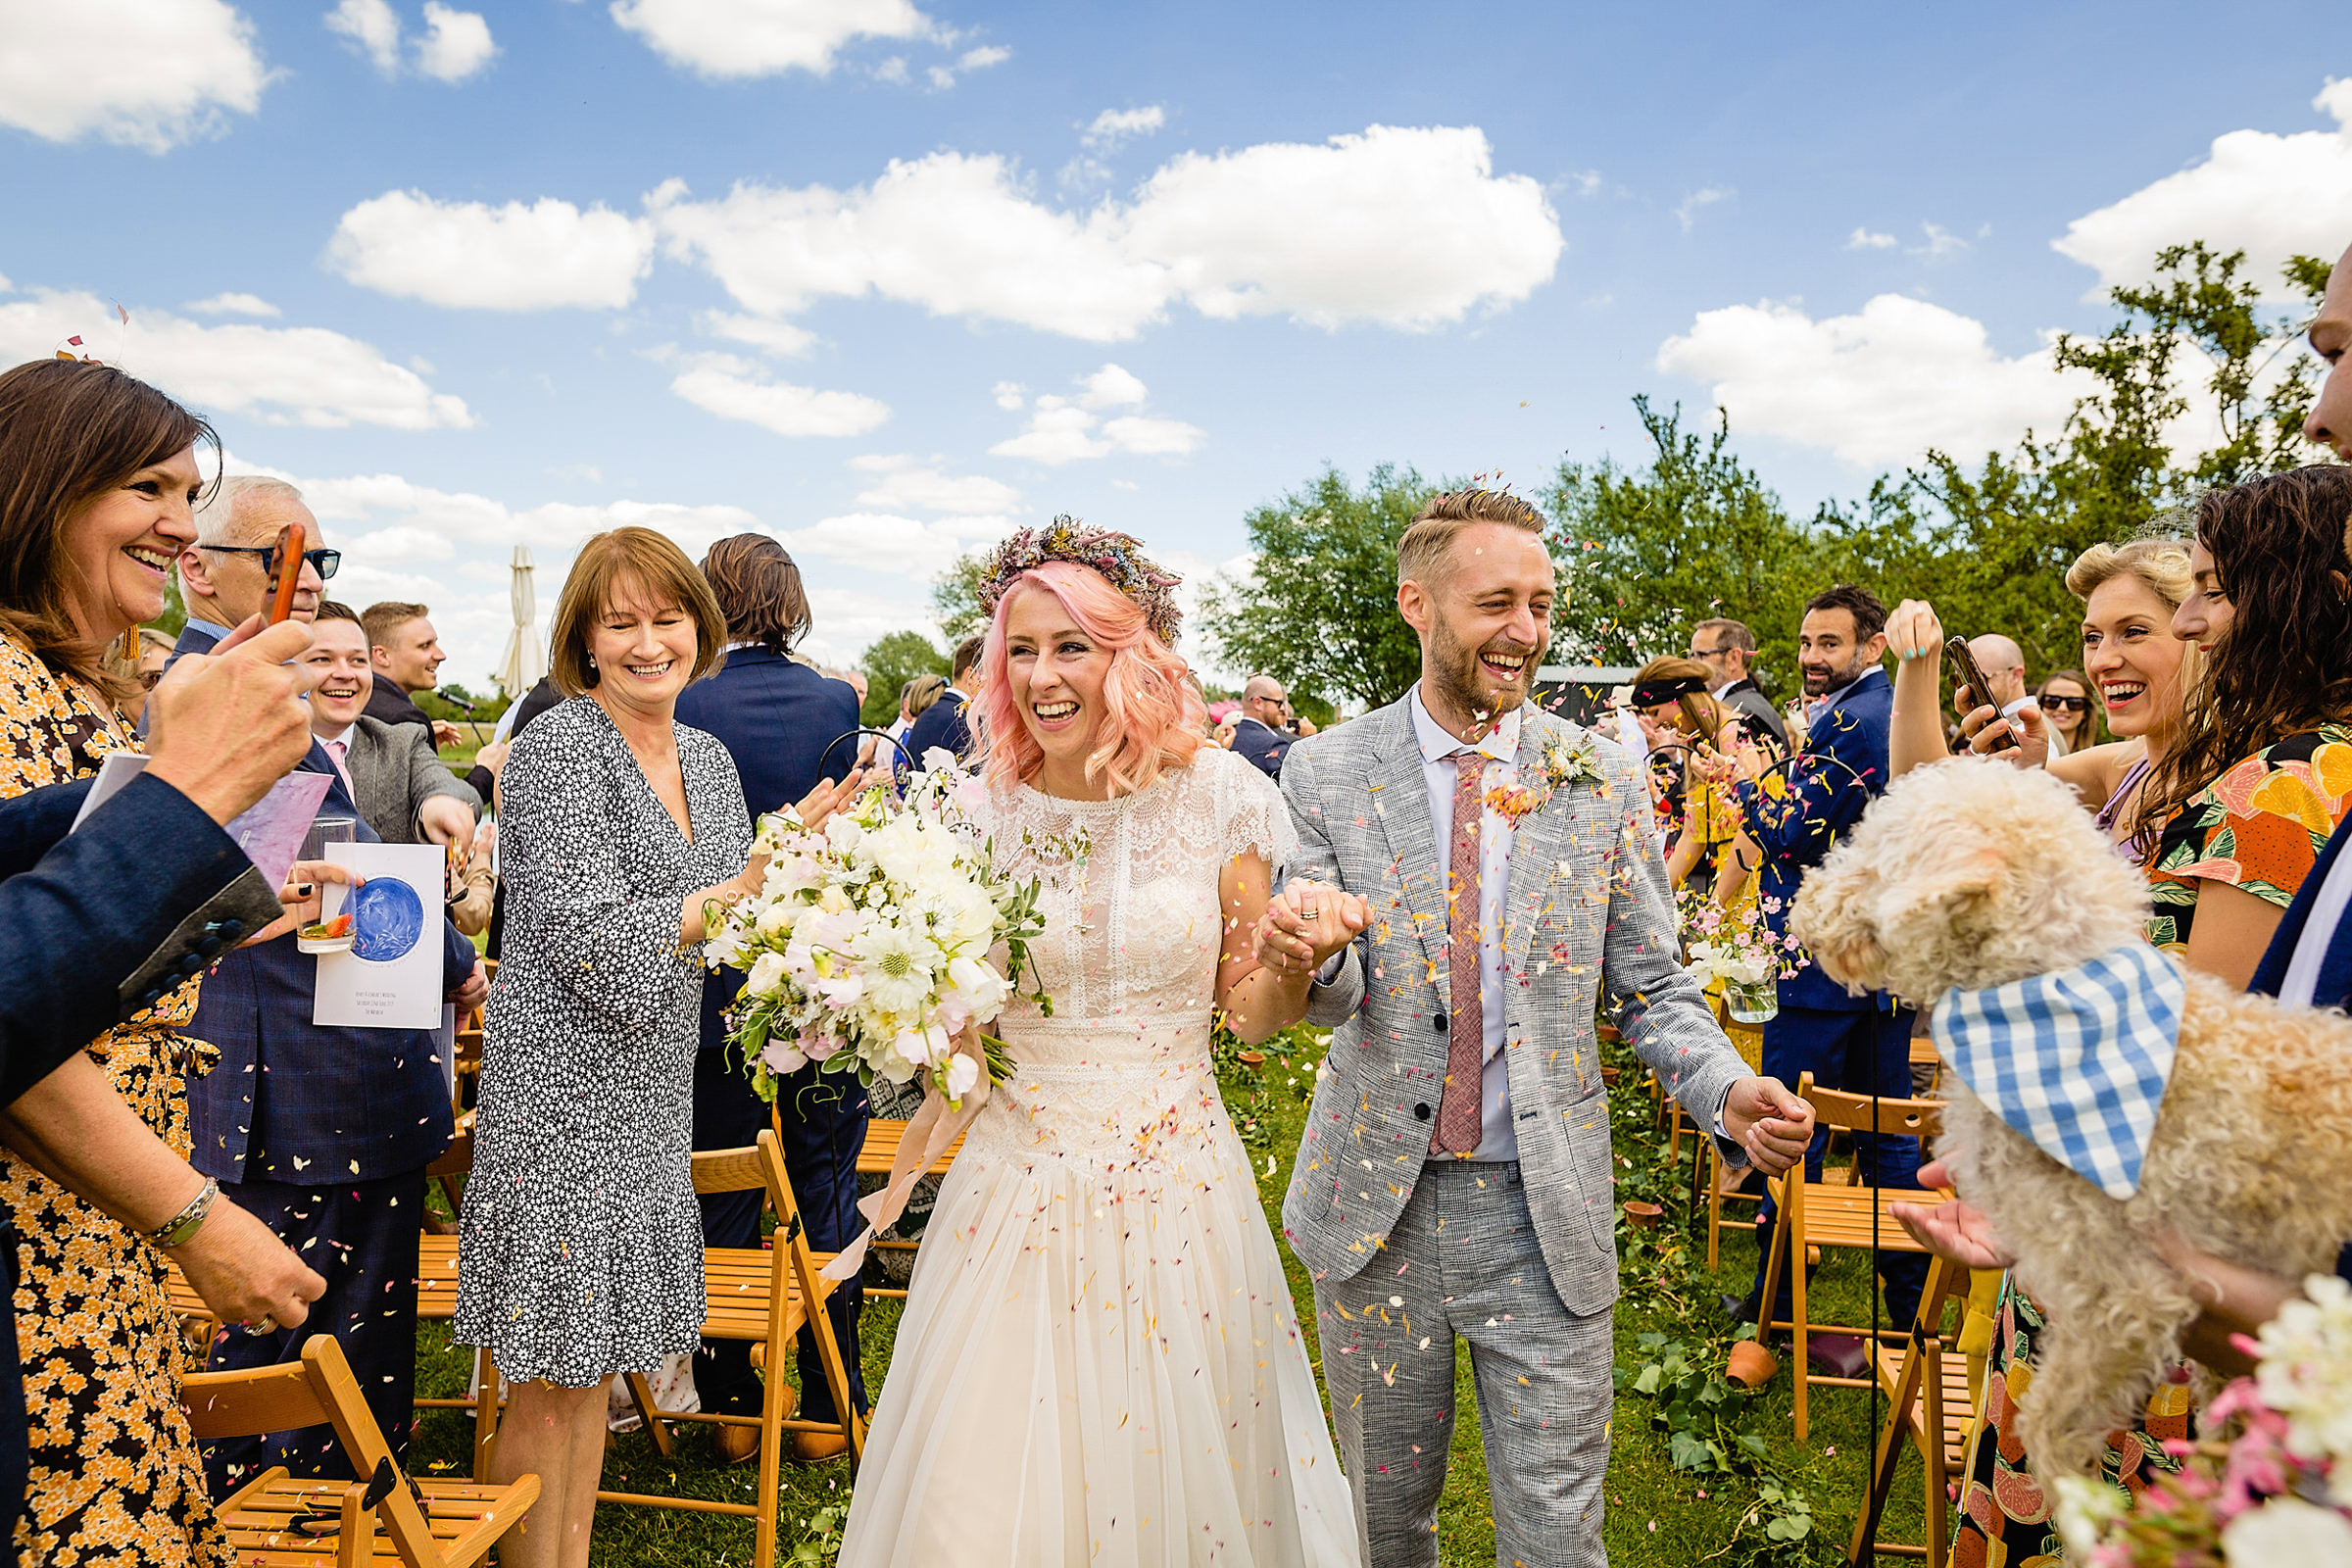 Couple outdoor recessional under confetti shower - photo by Emma + Rich